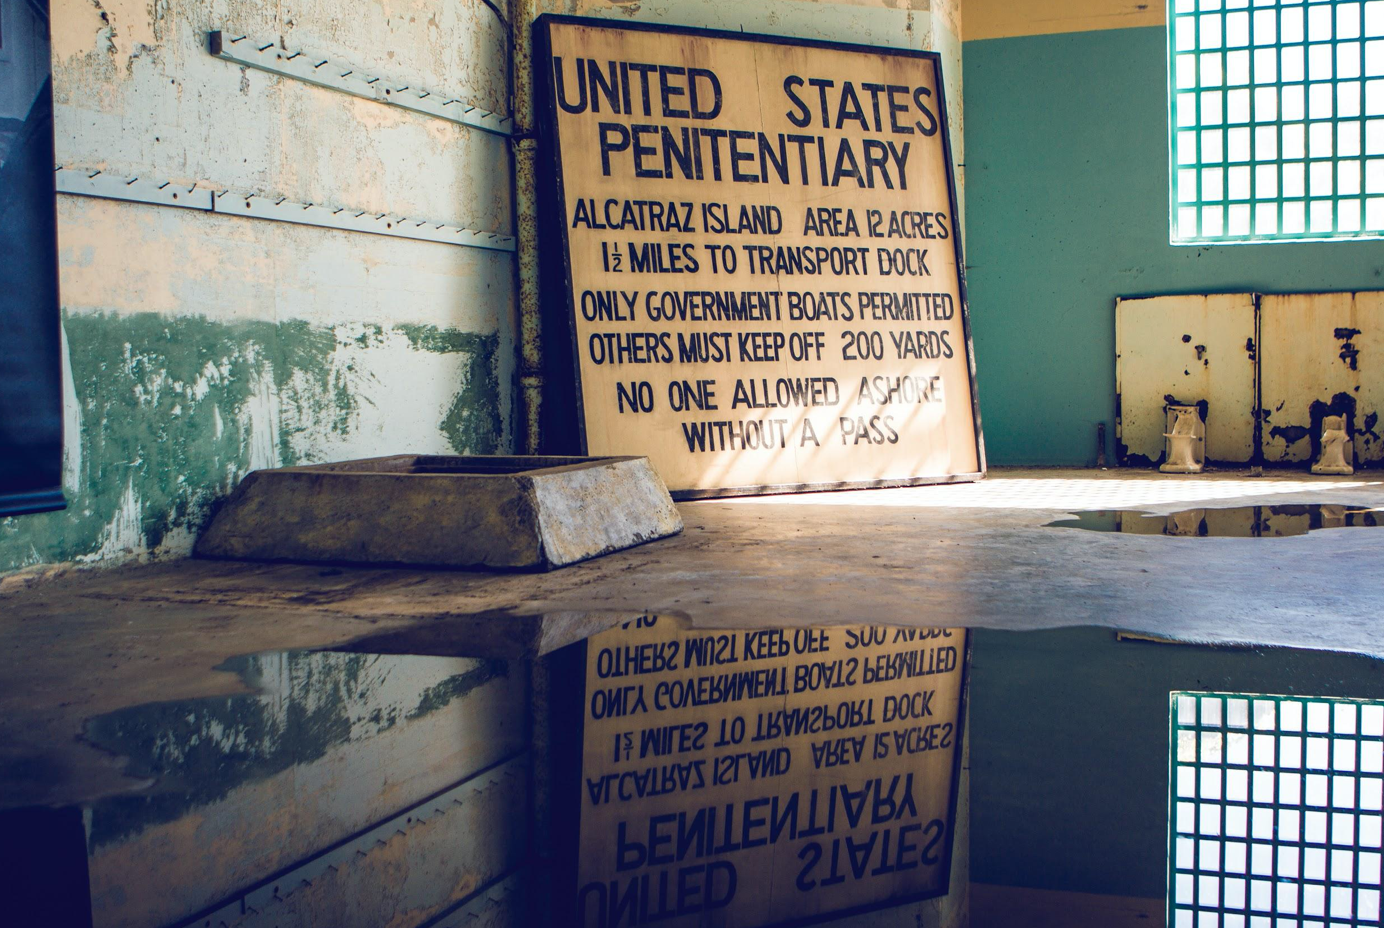 Alcatraz Island, San Francisco, United States. Image by Rita Morais, via Unsplash.com.